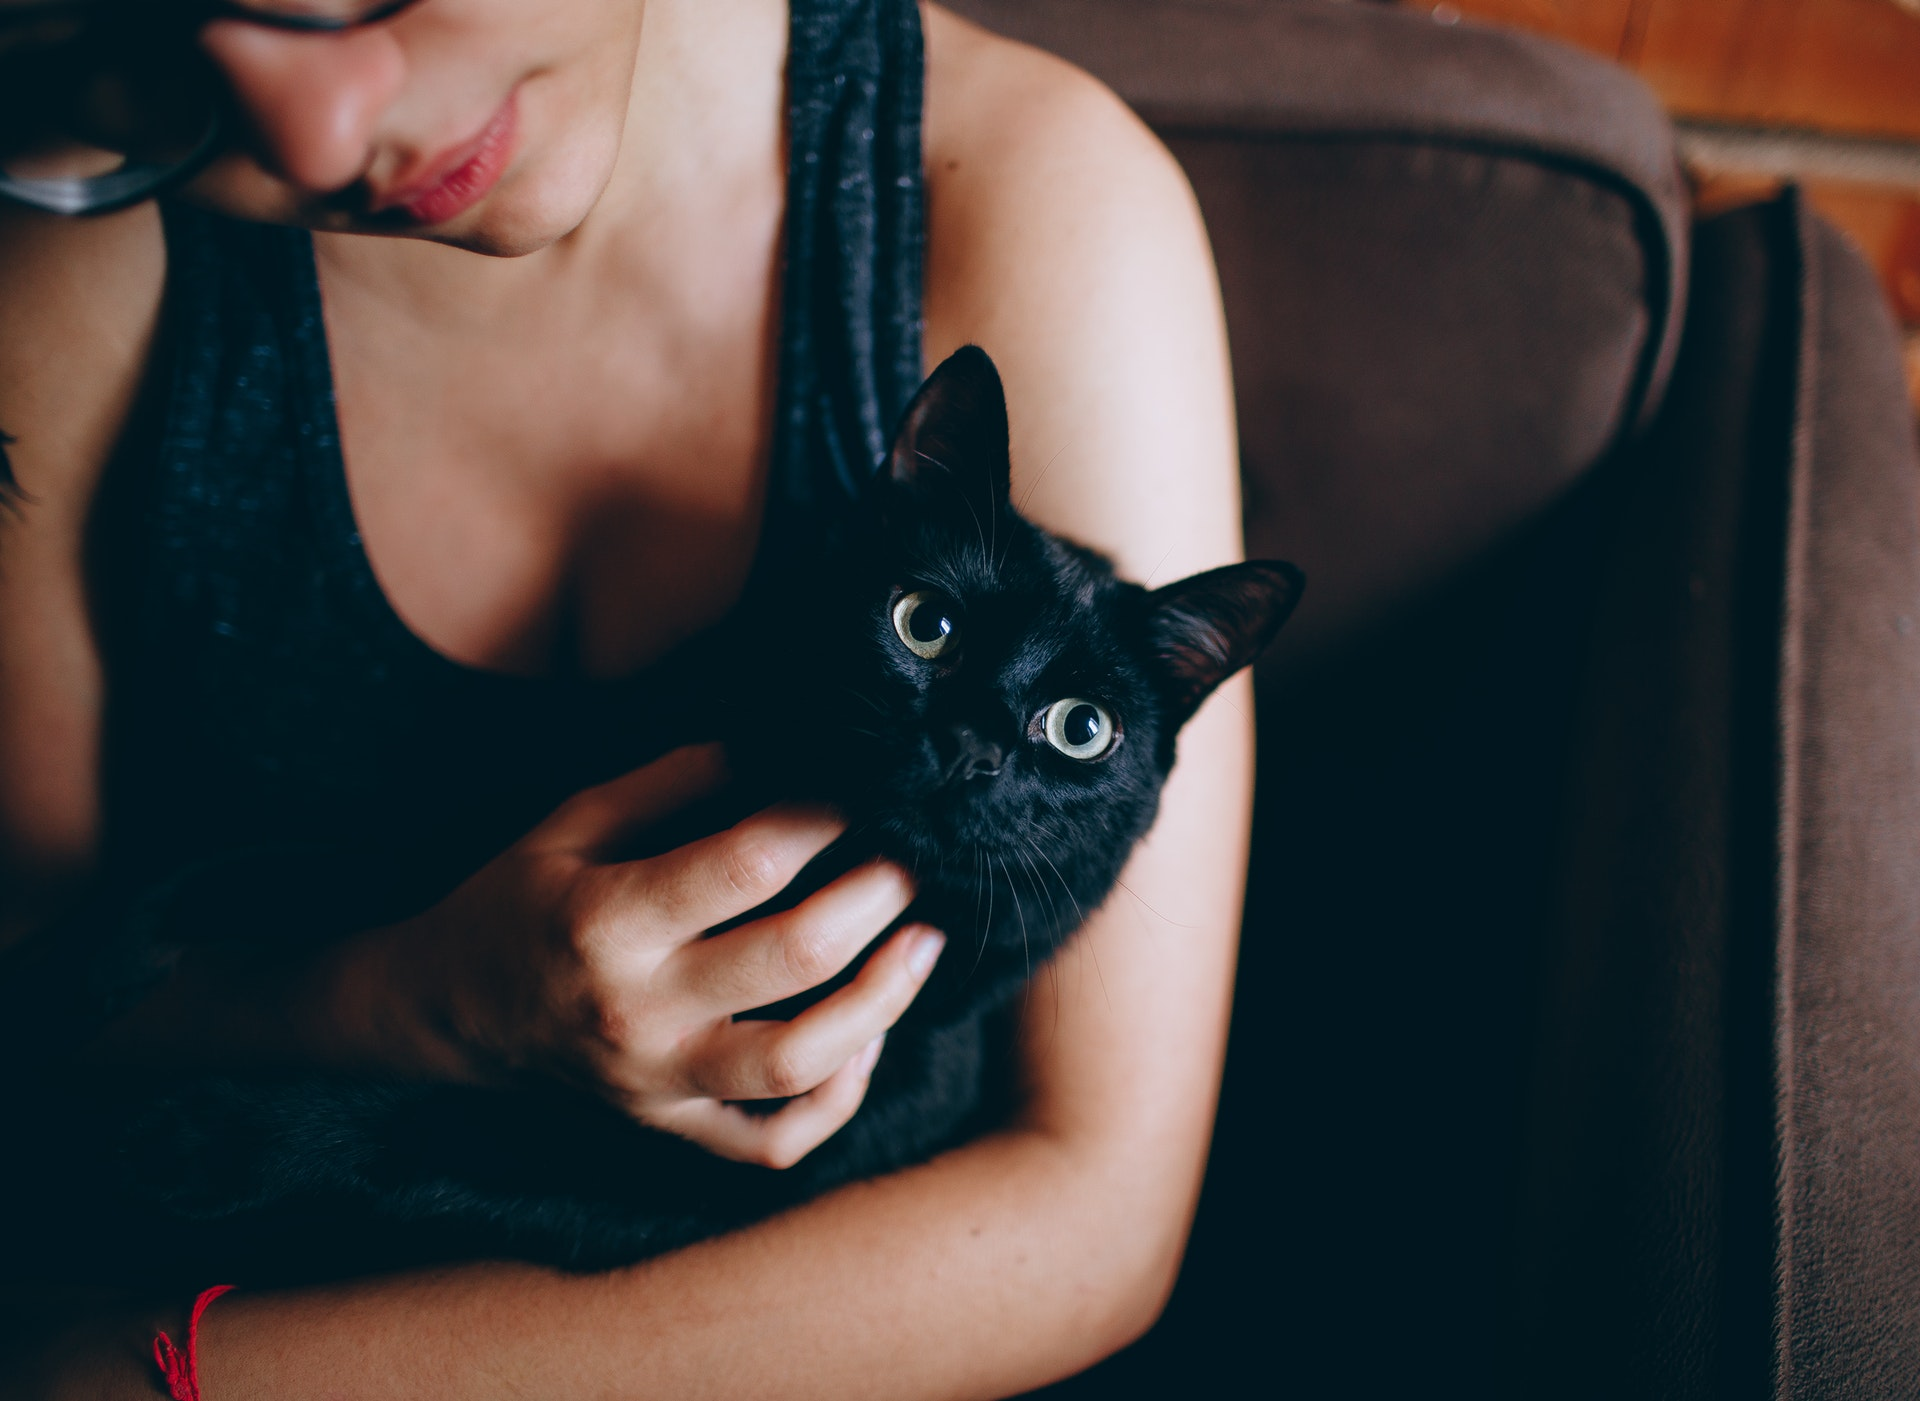 girl holding cat & rubbing its chin